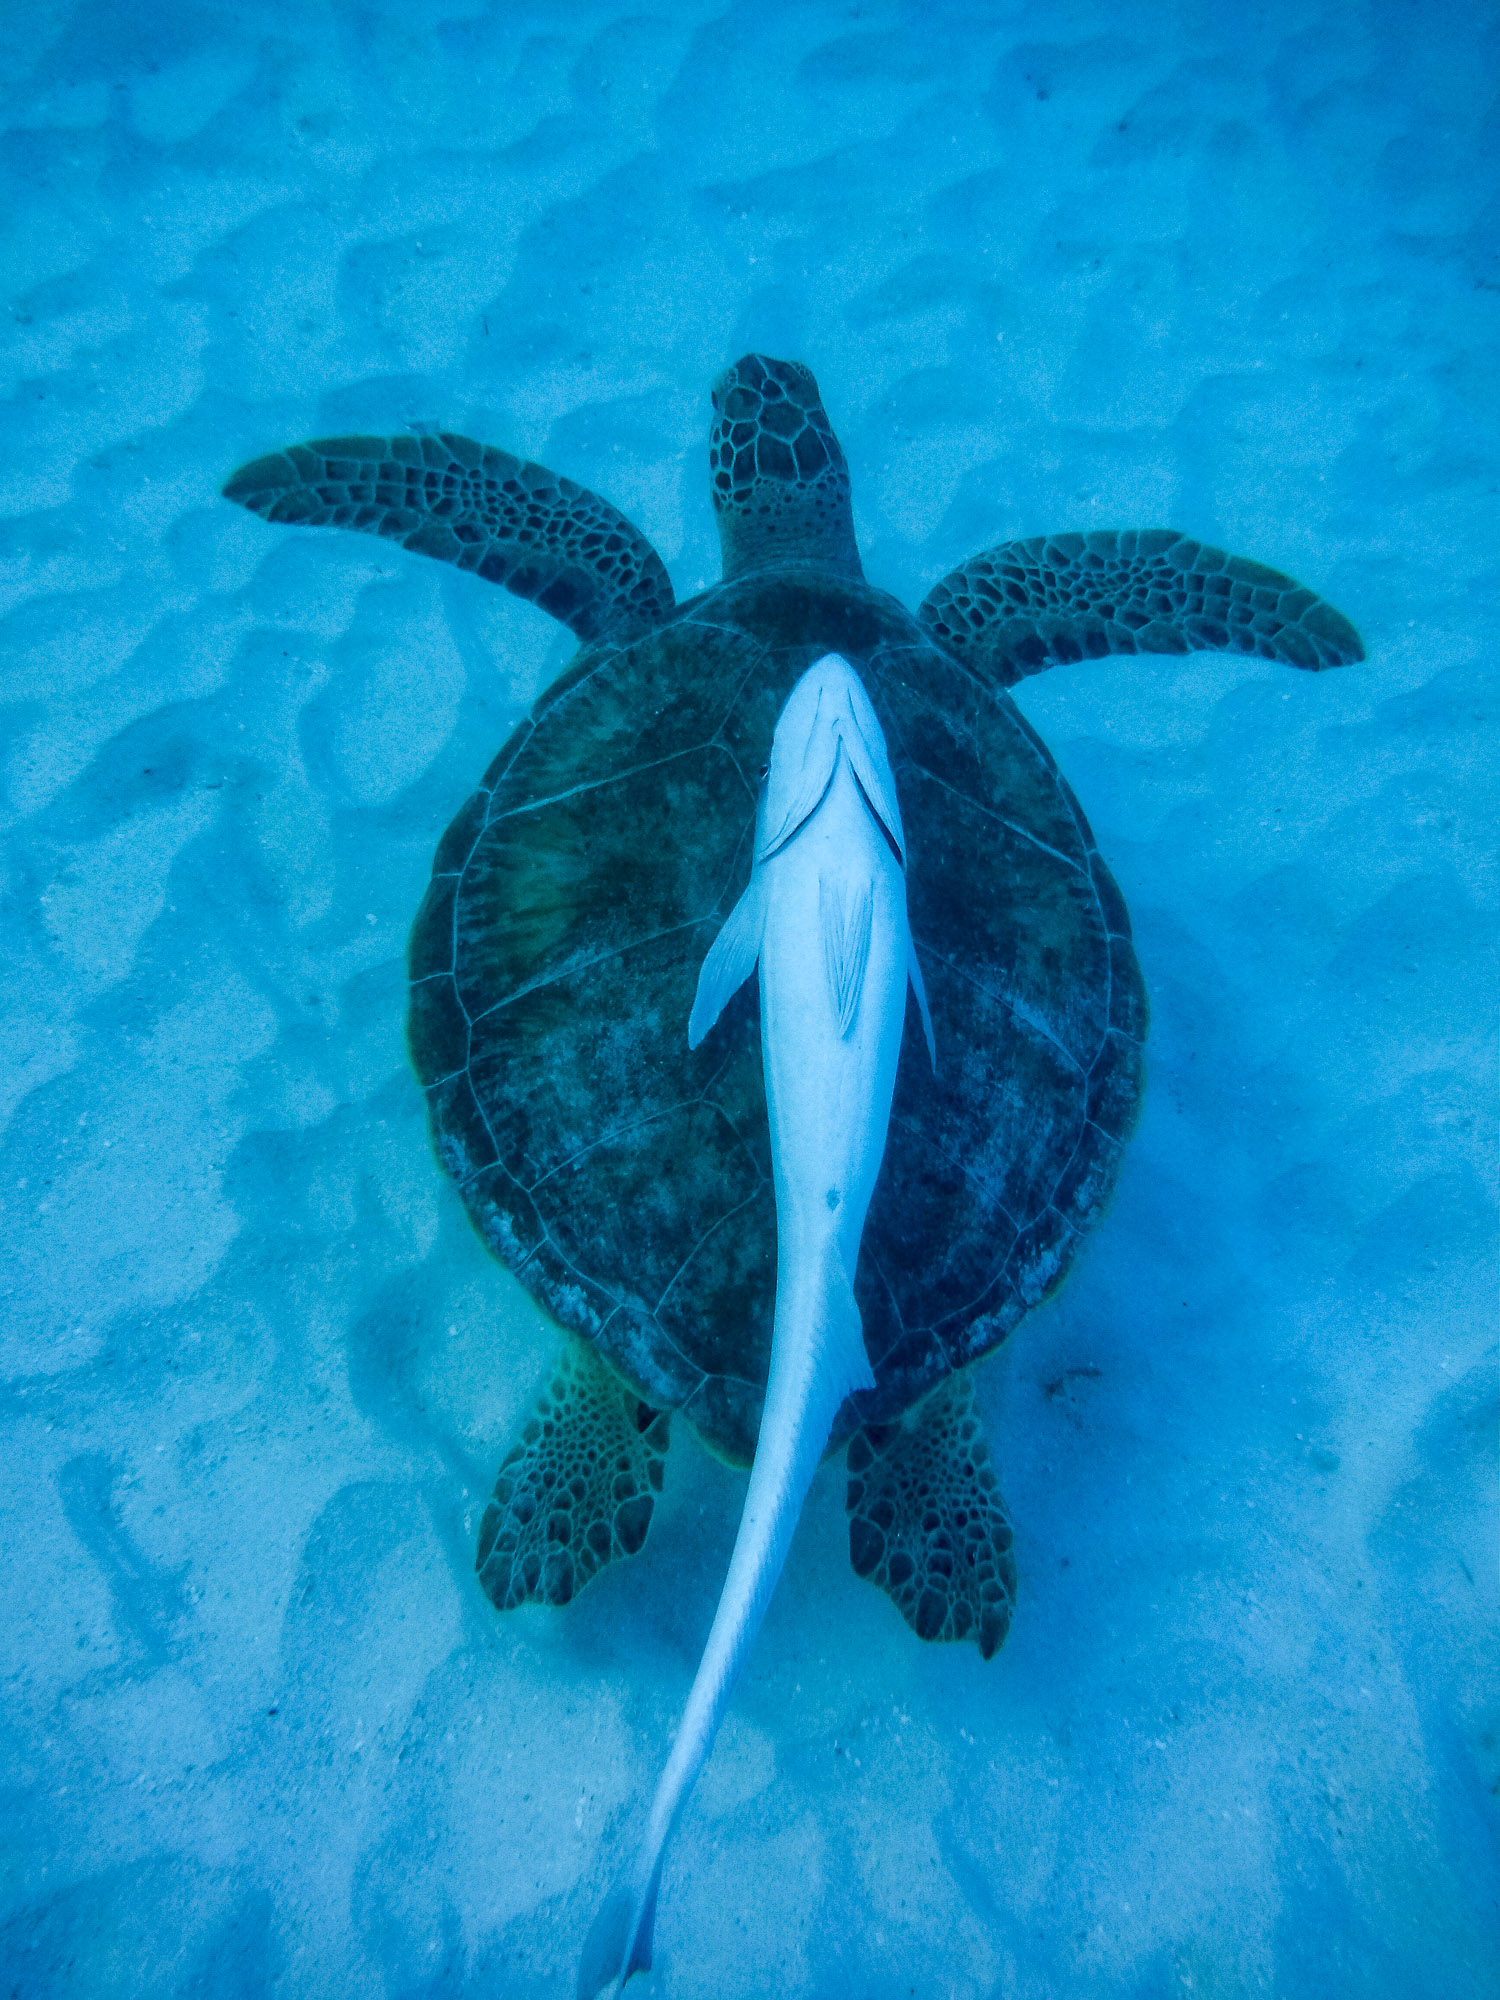 What a strange thing to see...a fish floating on its back on top of a sea turtle.